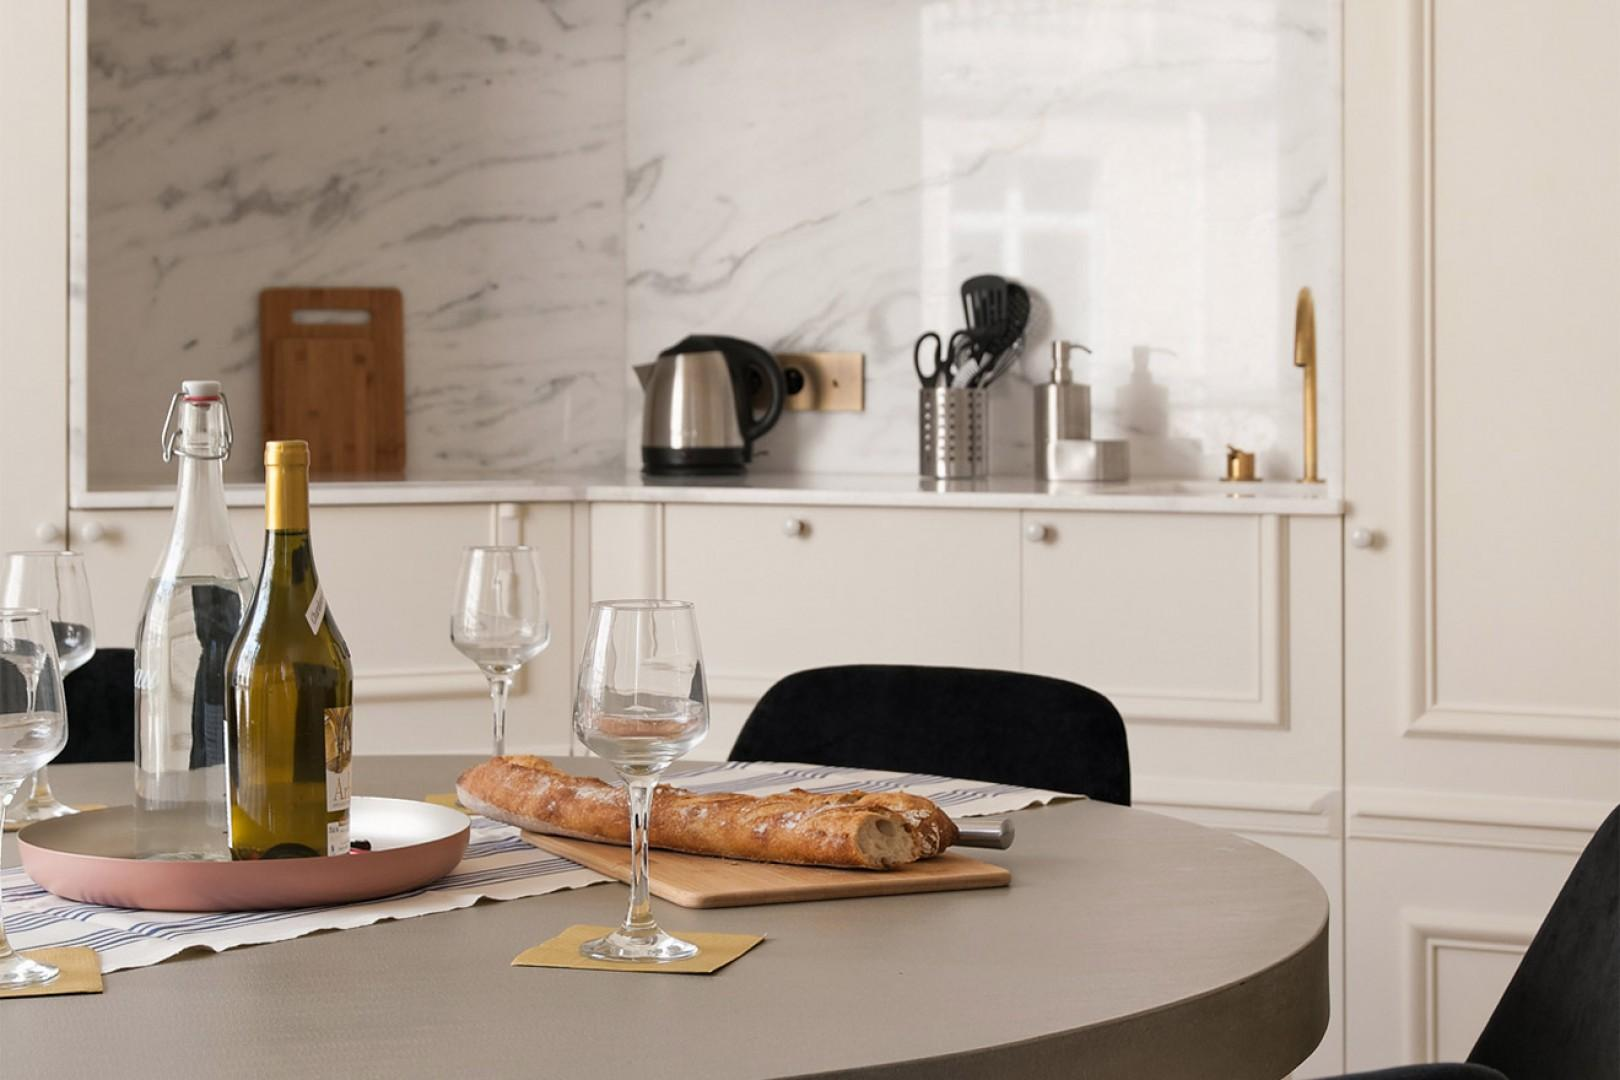 The charming dining table is perfect for casual meals.